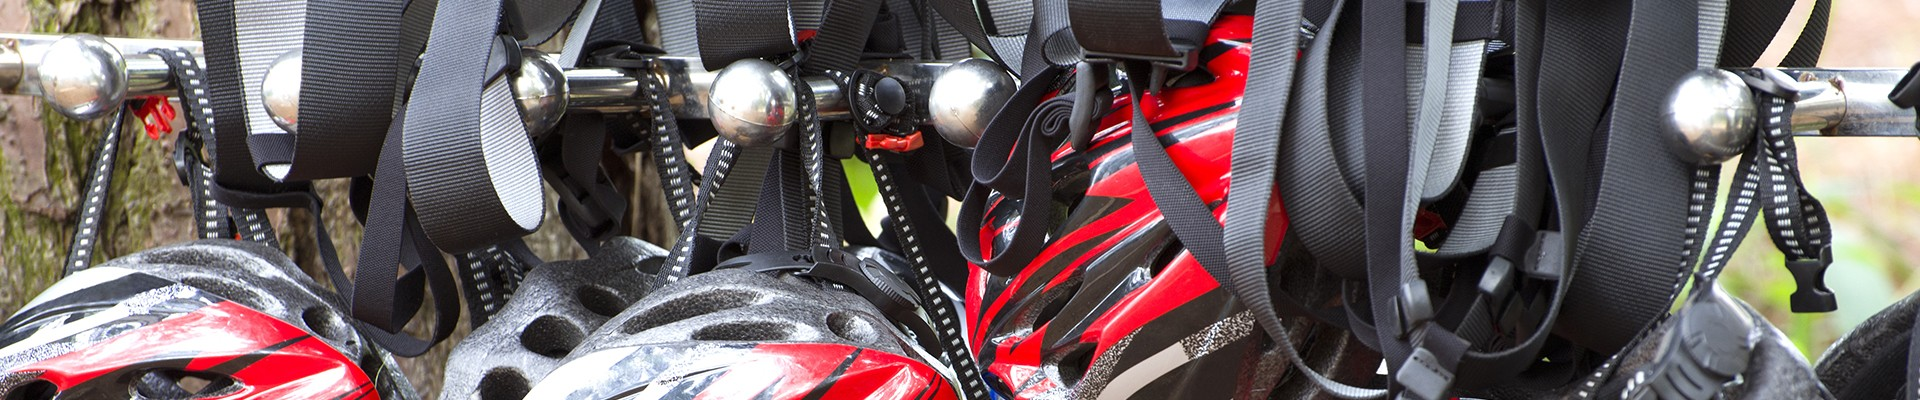 helmet and harness